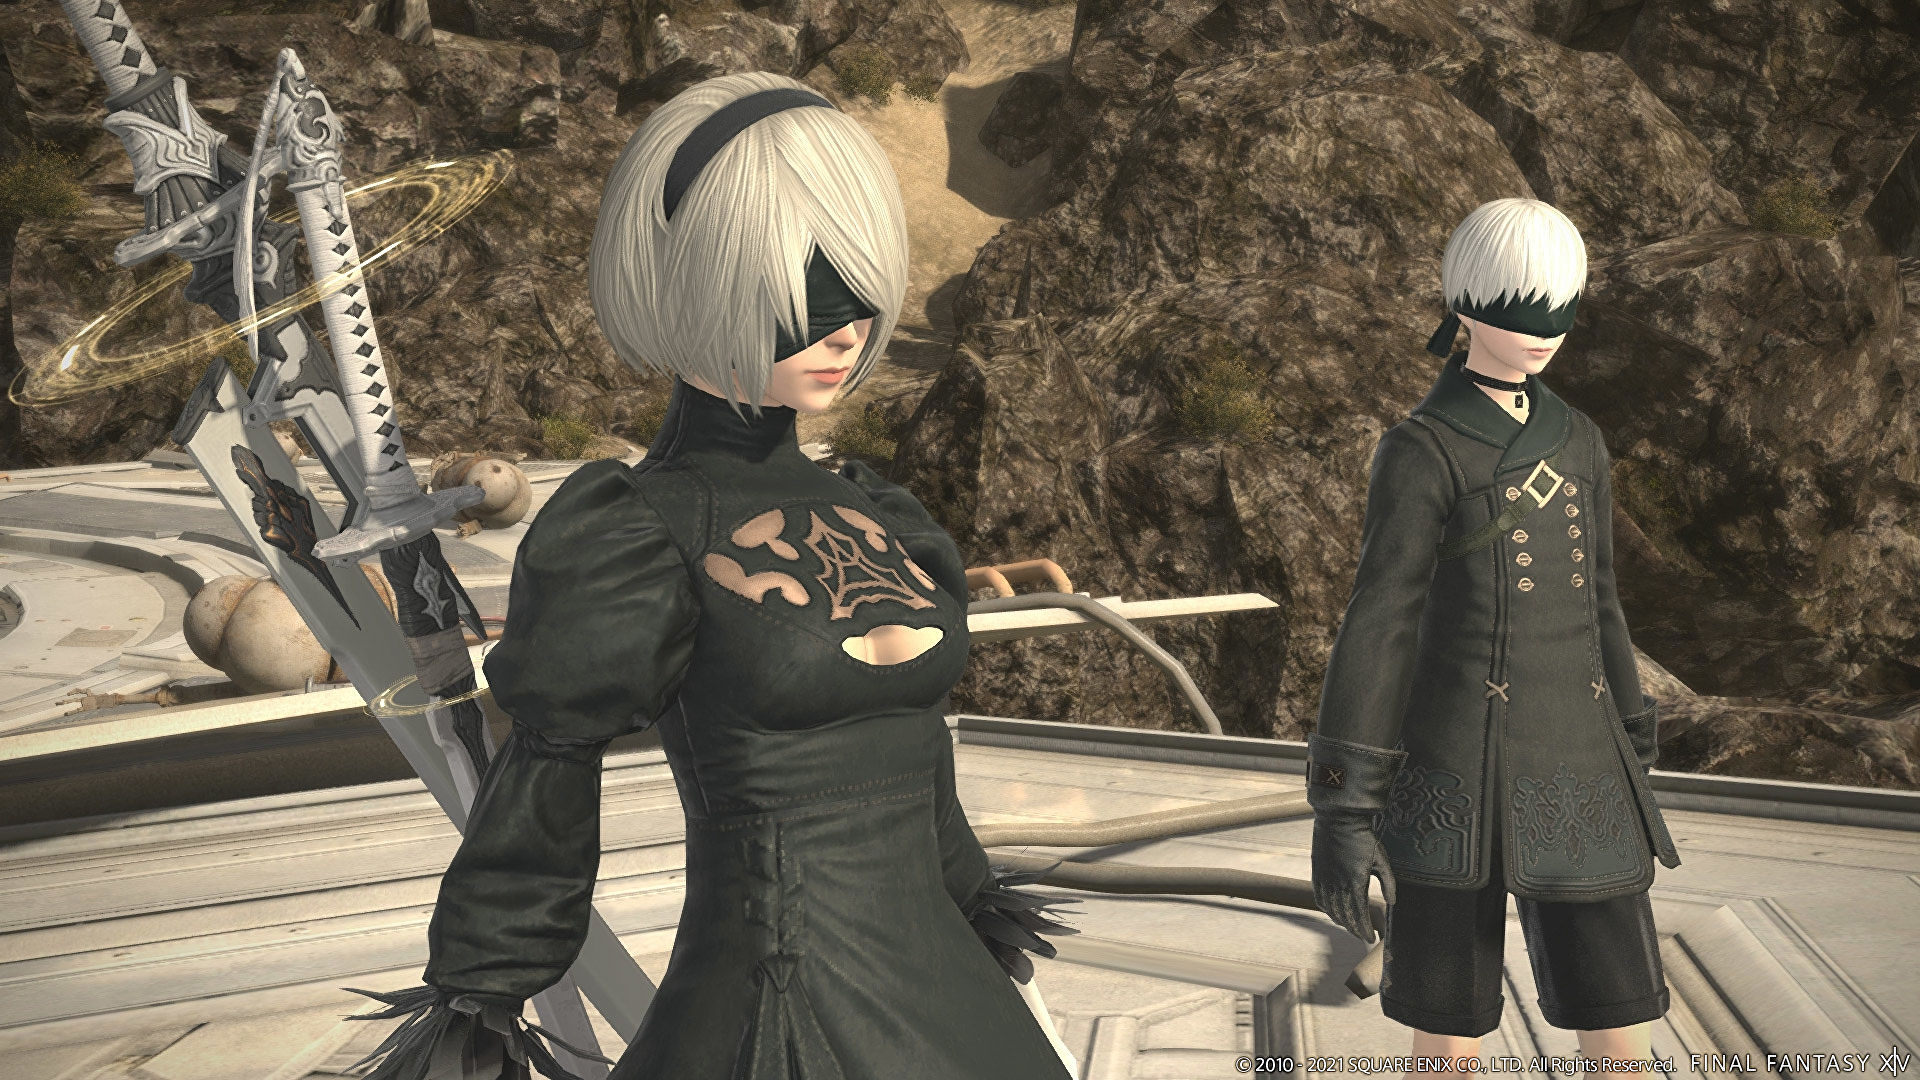 Final Fantasy XIV's patch 5.5 trailer shows Nier: Automata crossover